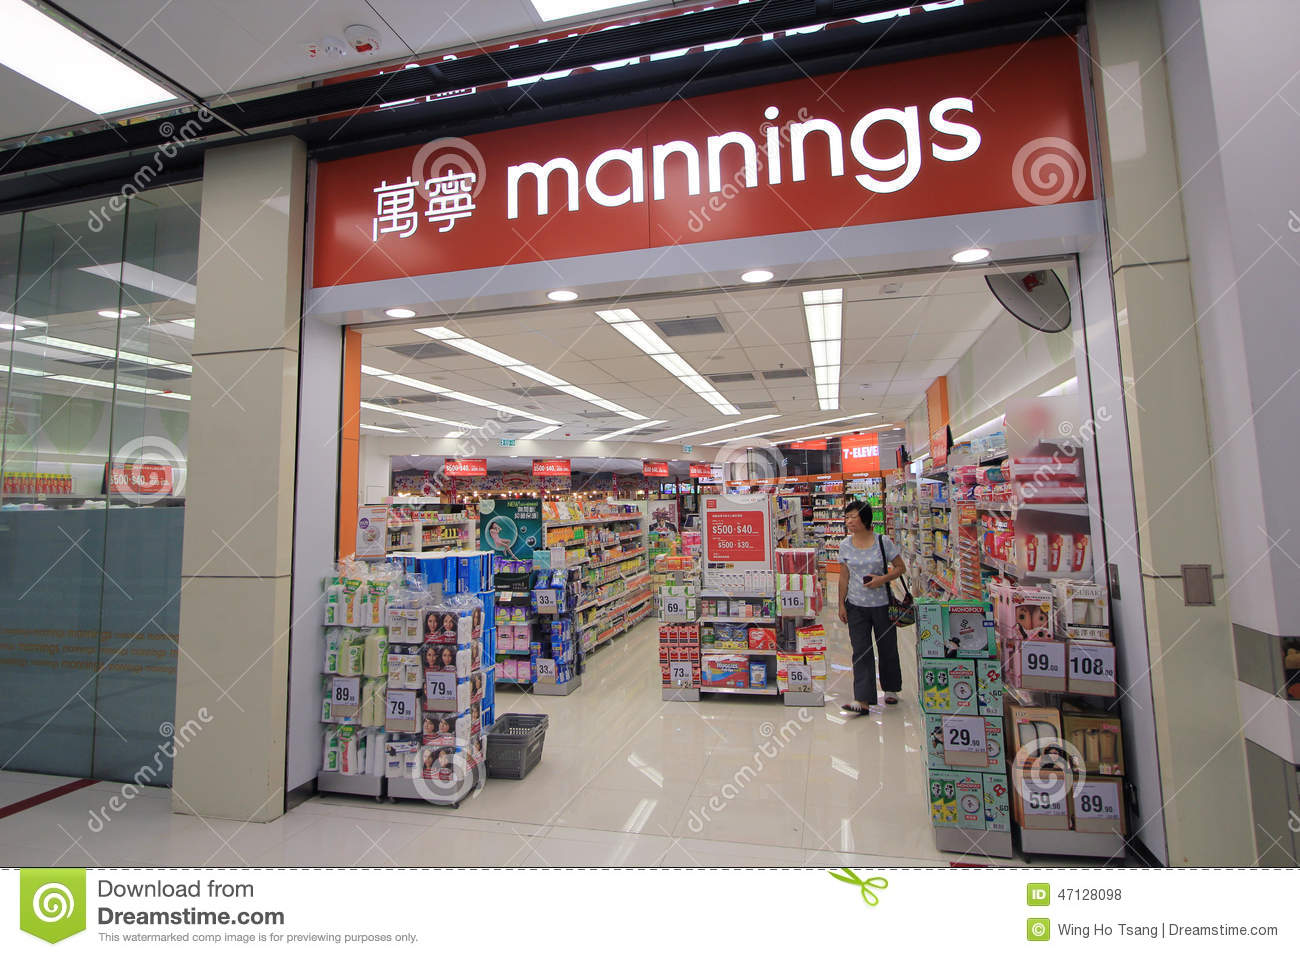 china mannings report Find the best selection of peyton manning jersey here at dhgatecom source cheap and high quality products in hundreds of categories wholesale direct from china.